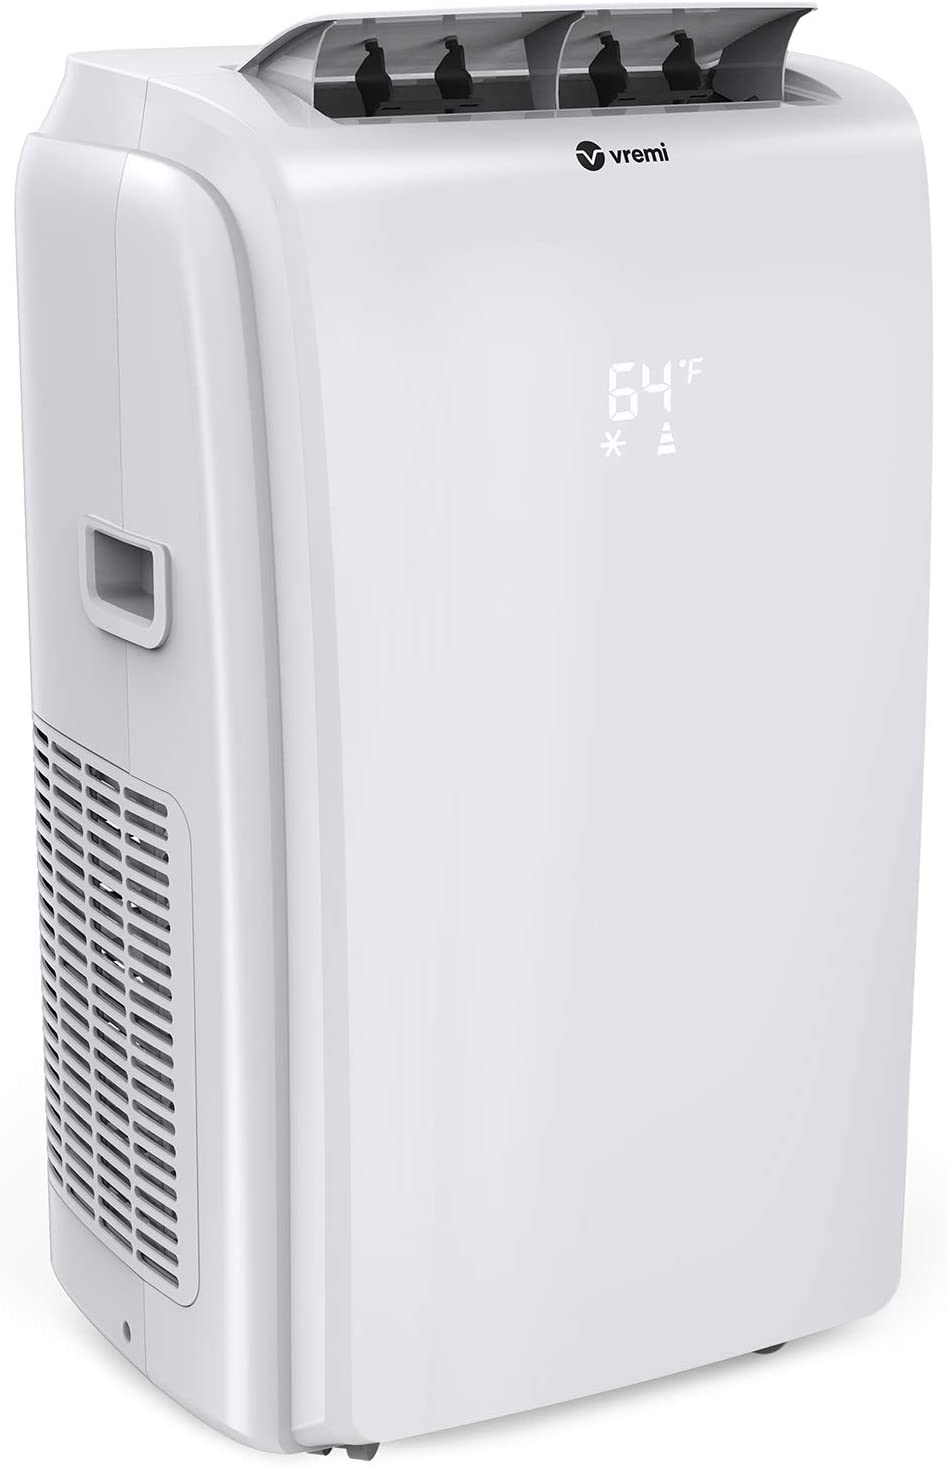 Vremi 12,000 BTU Portable Air Conditioner - Conveniently Cools Rooms 350 to 500 Square Feet - LED Display, Auto Shut-Off, Remote and Dehumidifier Function